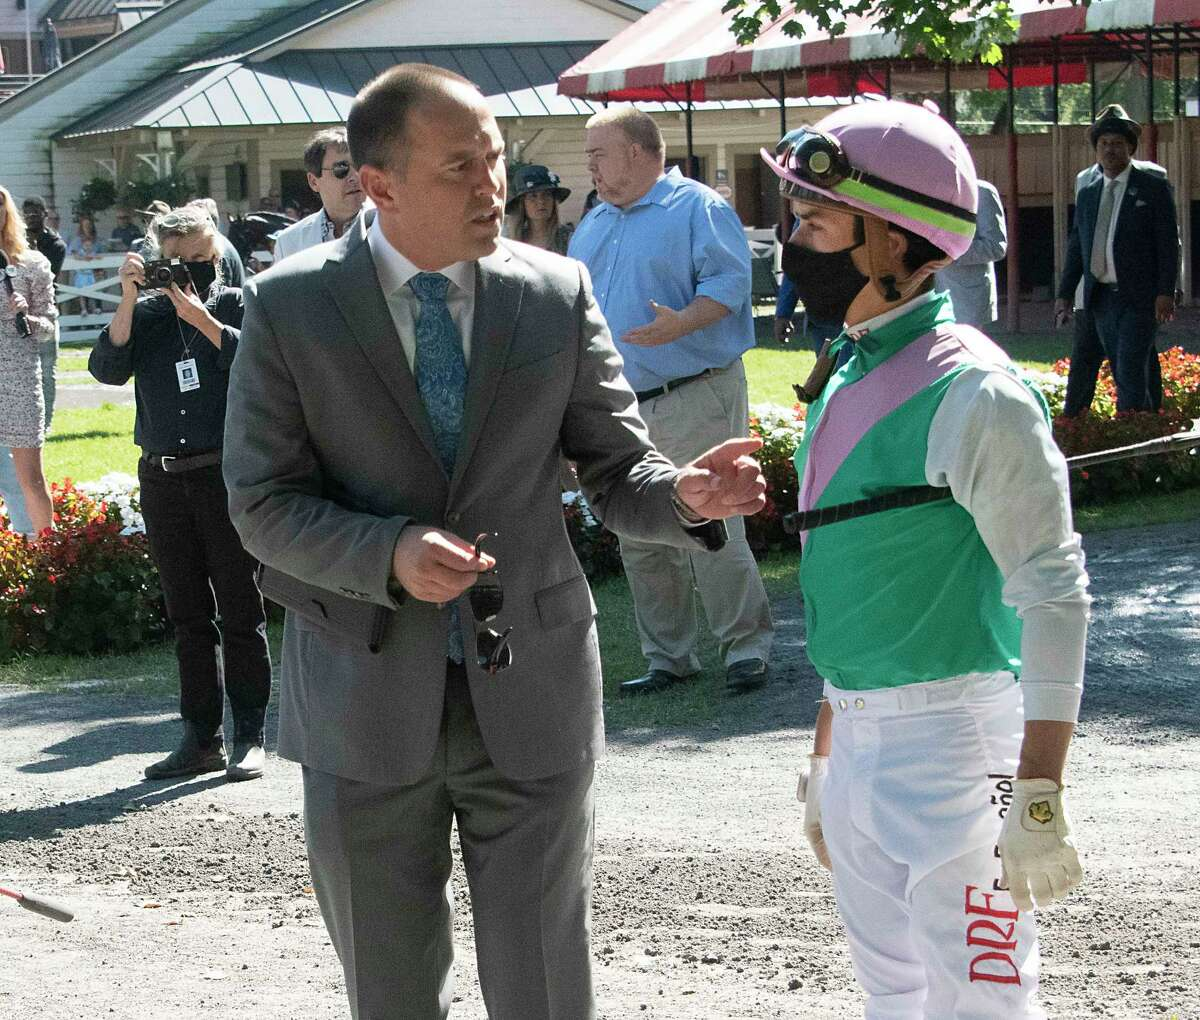 Realm of Law trainer Chad Brown talks to jockey Irad Ortiz, Jr. before the start of the 5th race at the Saratoga Race Course on Monday, Sept. 6, 2021 in Saratoga Springs, N.Y. Today is the last day of the meet.